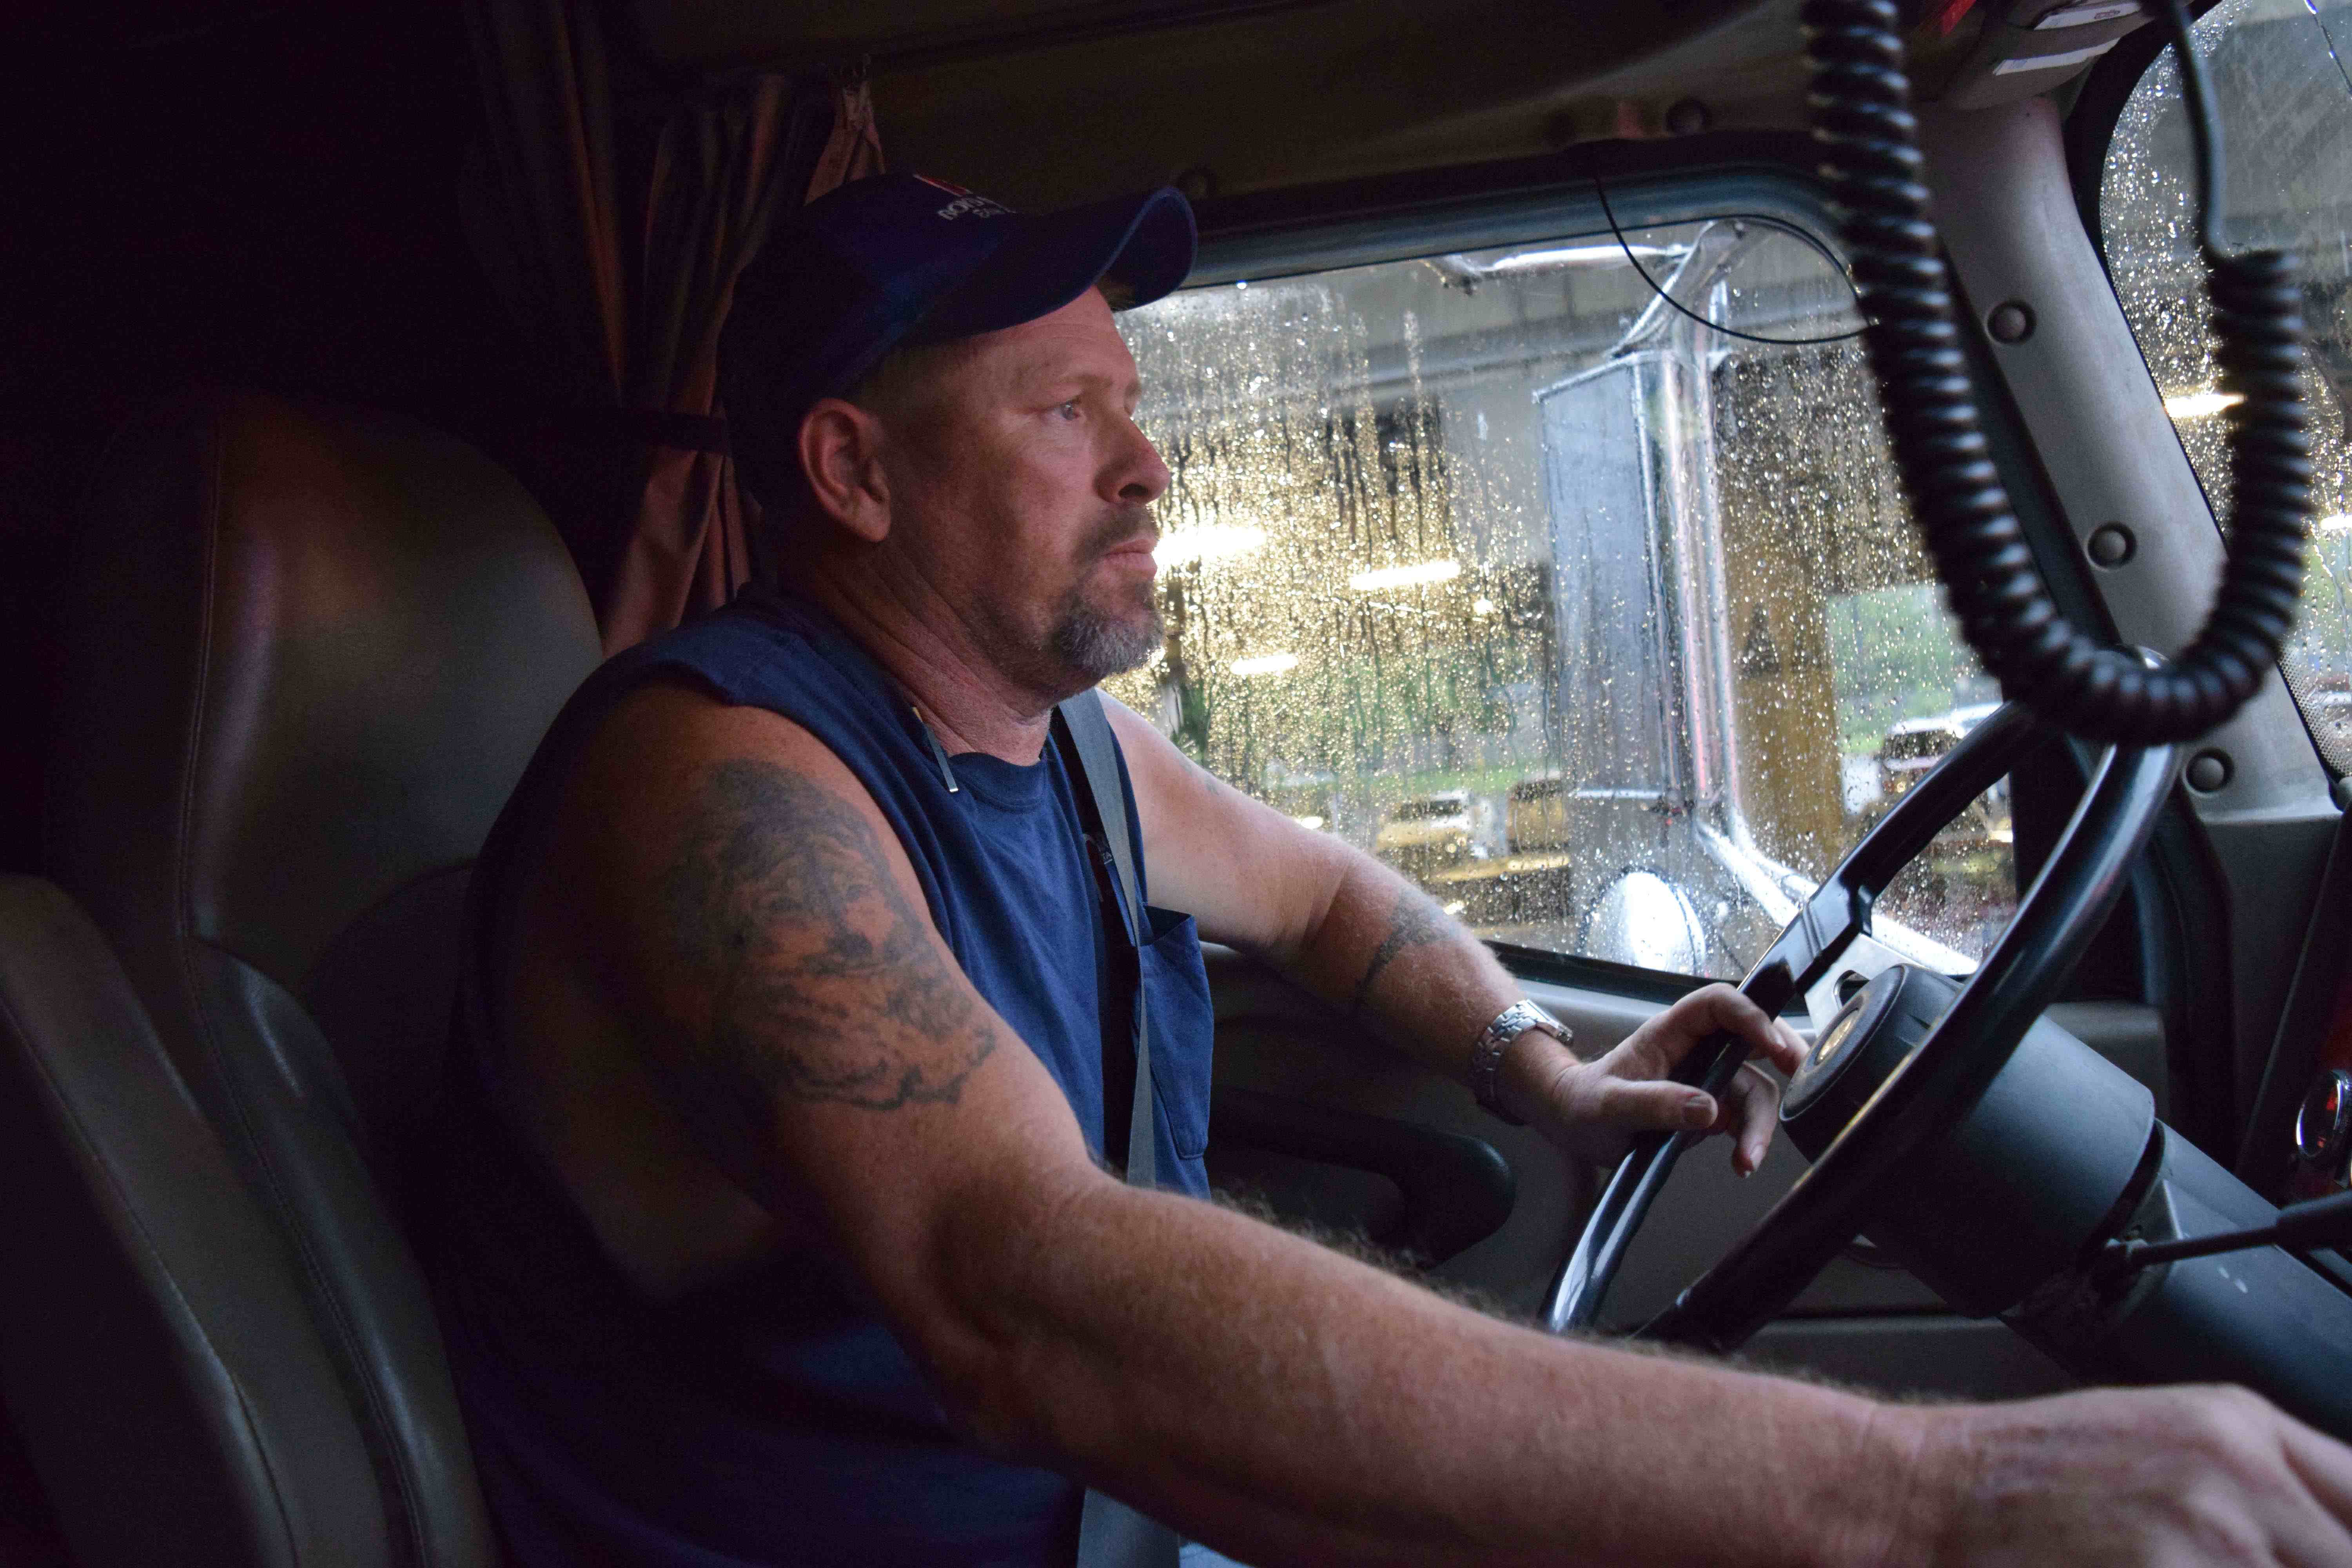 Owner-operator Dan Heister on the right loads, tolerating 'trucking's BS' and the importance of savings accounts